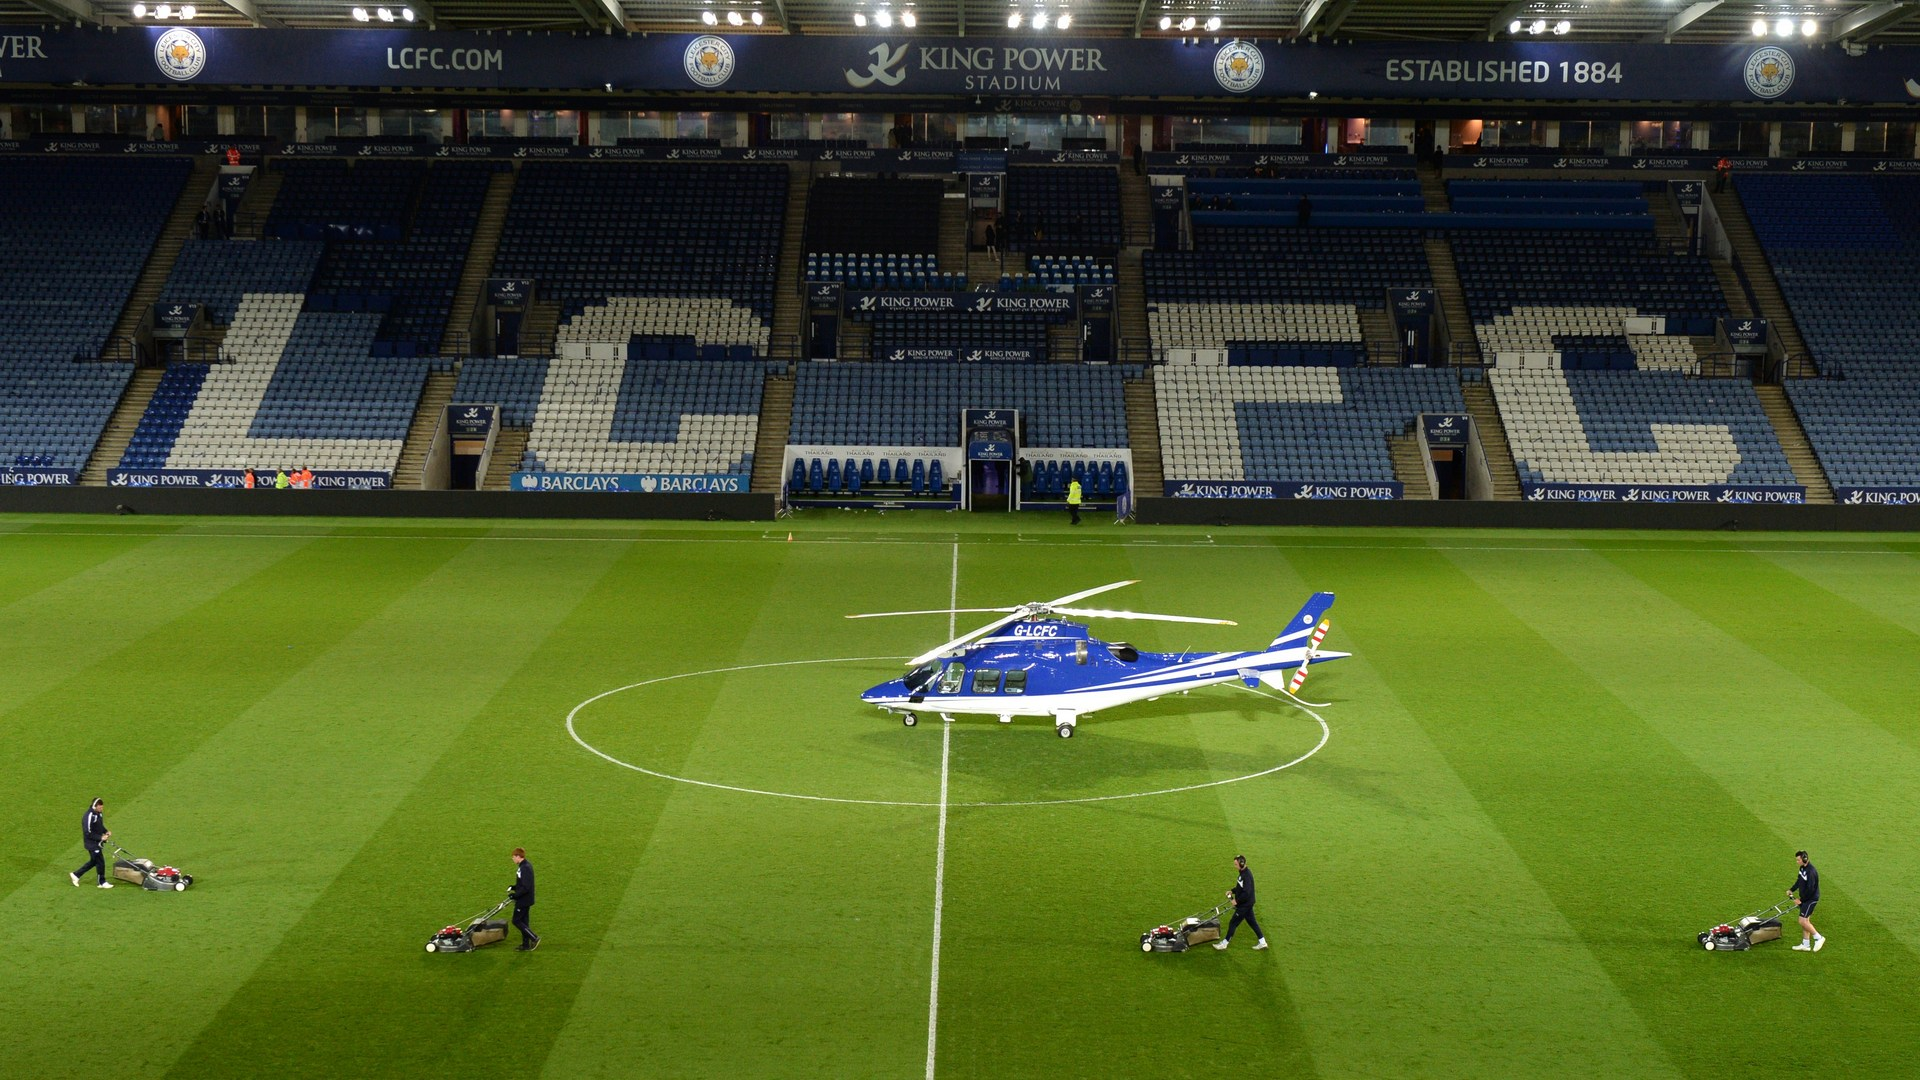 Leicester City FC Confirms Club Owner Died on Board Crashed Helicopter